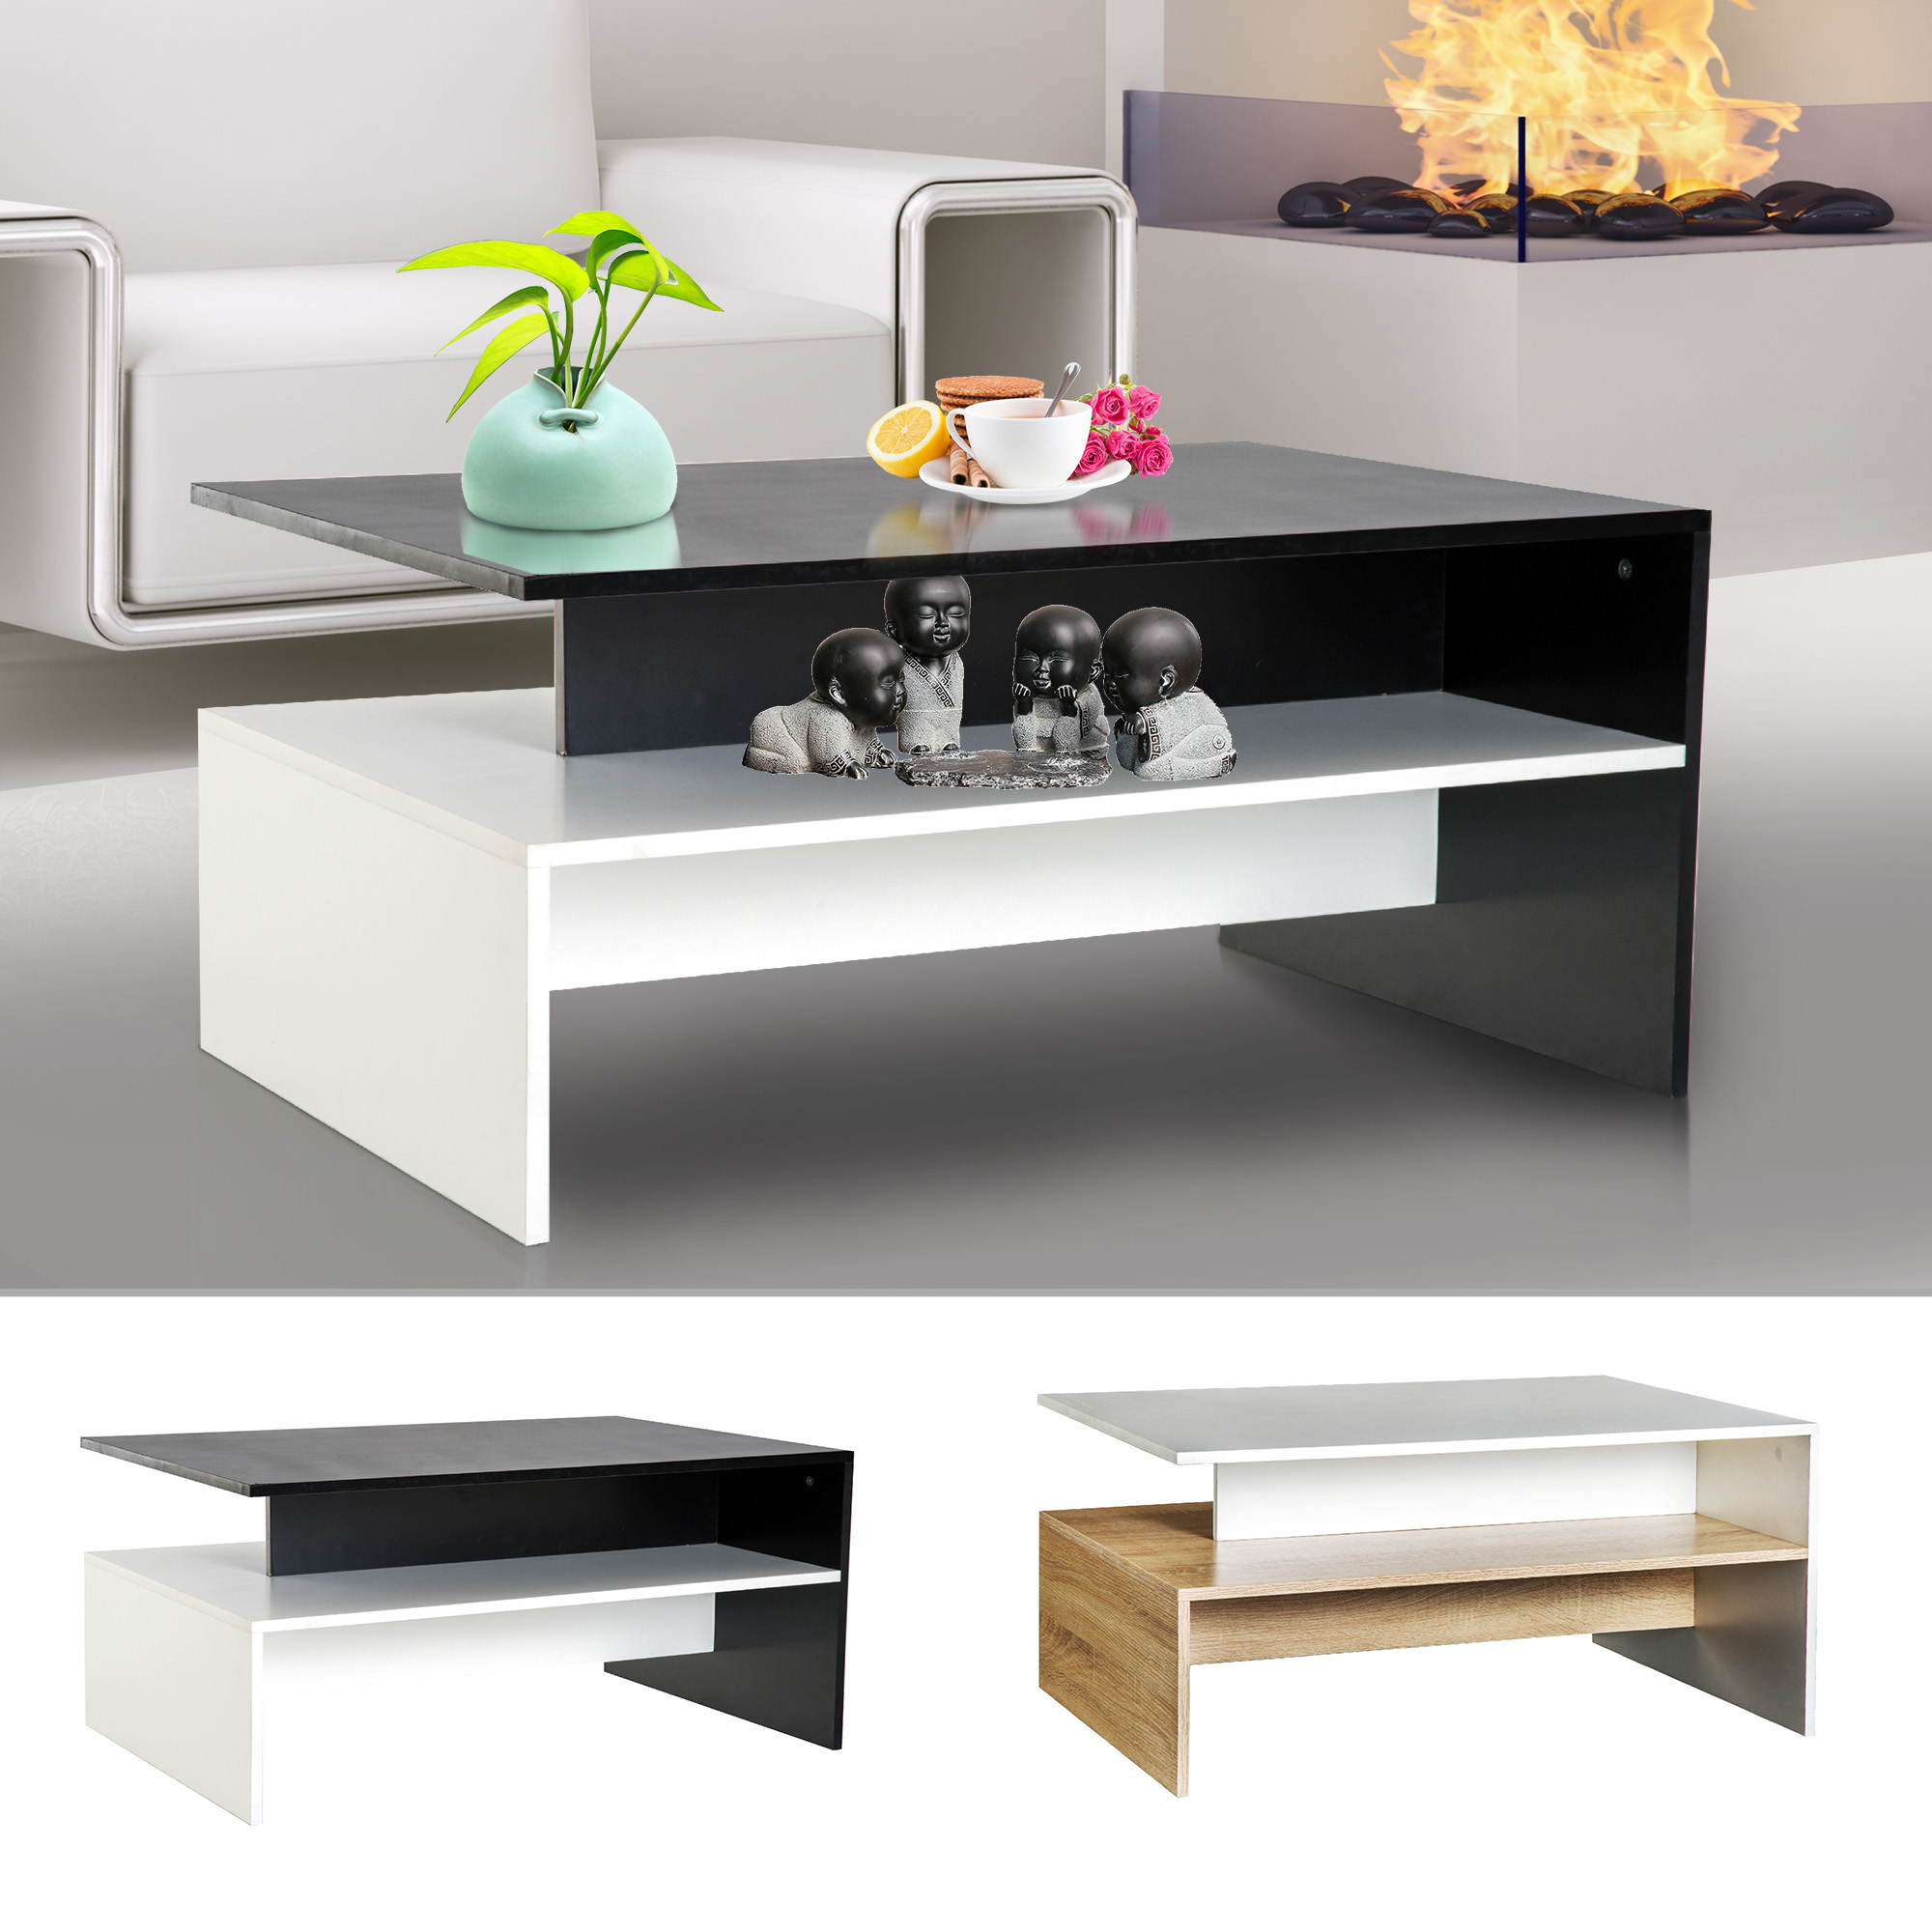 - Two-tone Modern 2-Tier Wooden Coffee Table Side Desk Living Room